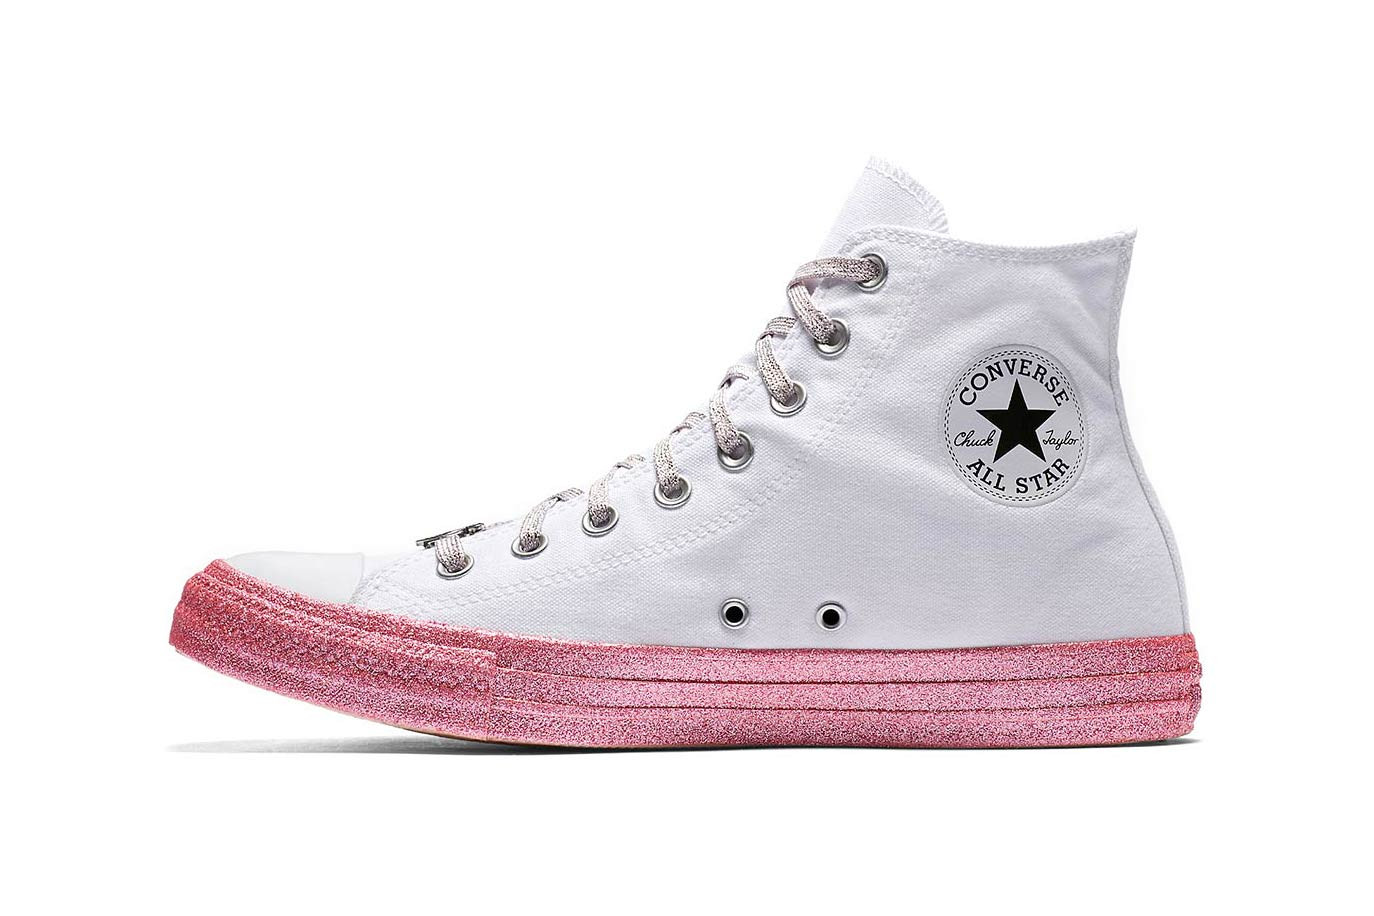 Miley Cyrus Converse Chuck Taylor All Star Platform Lift Low High Pink White Black Lookbook